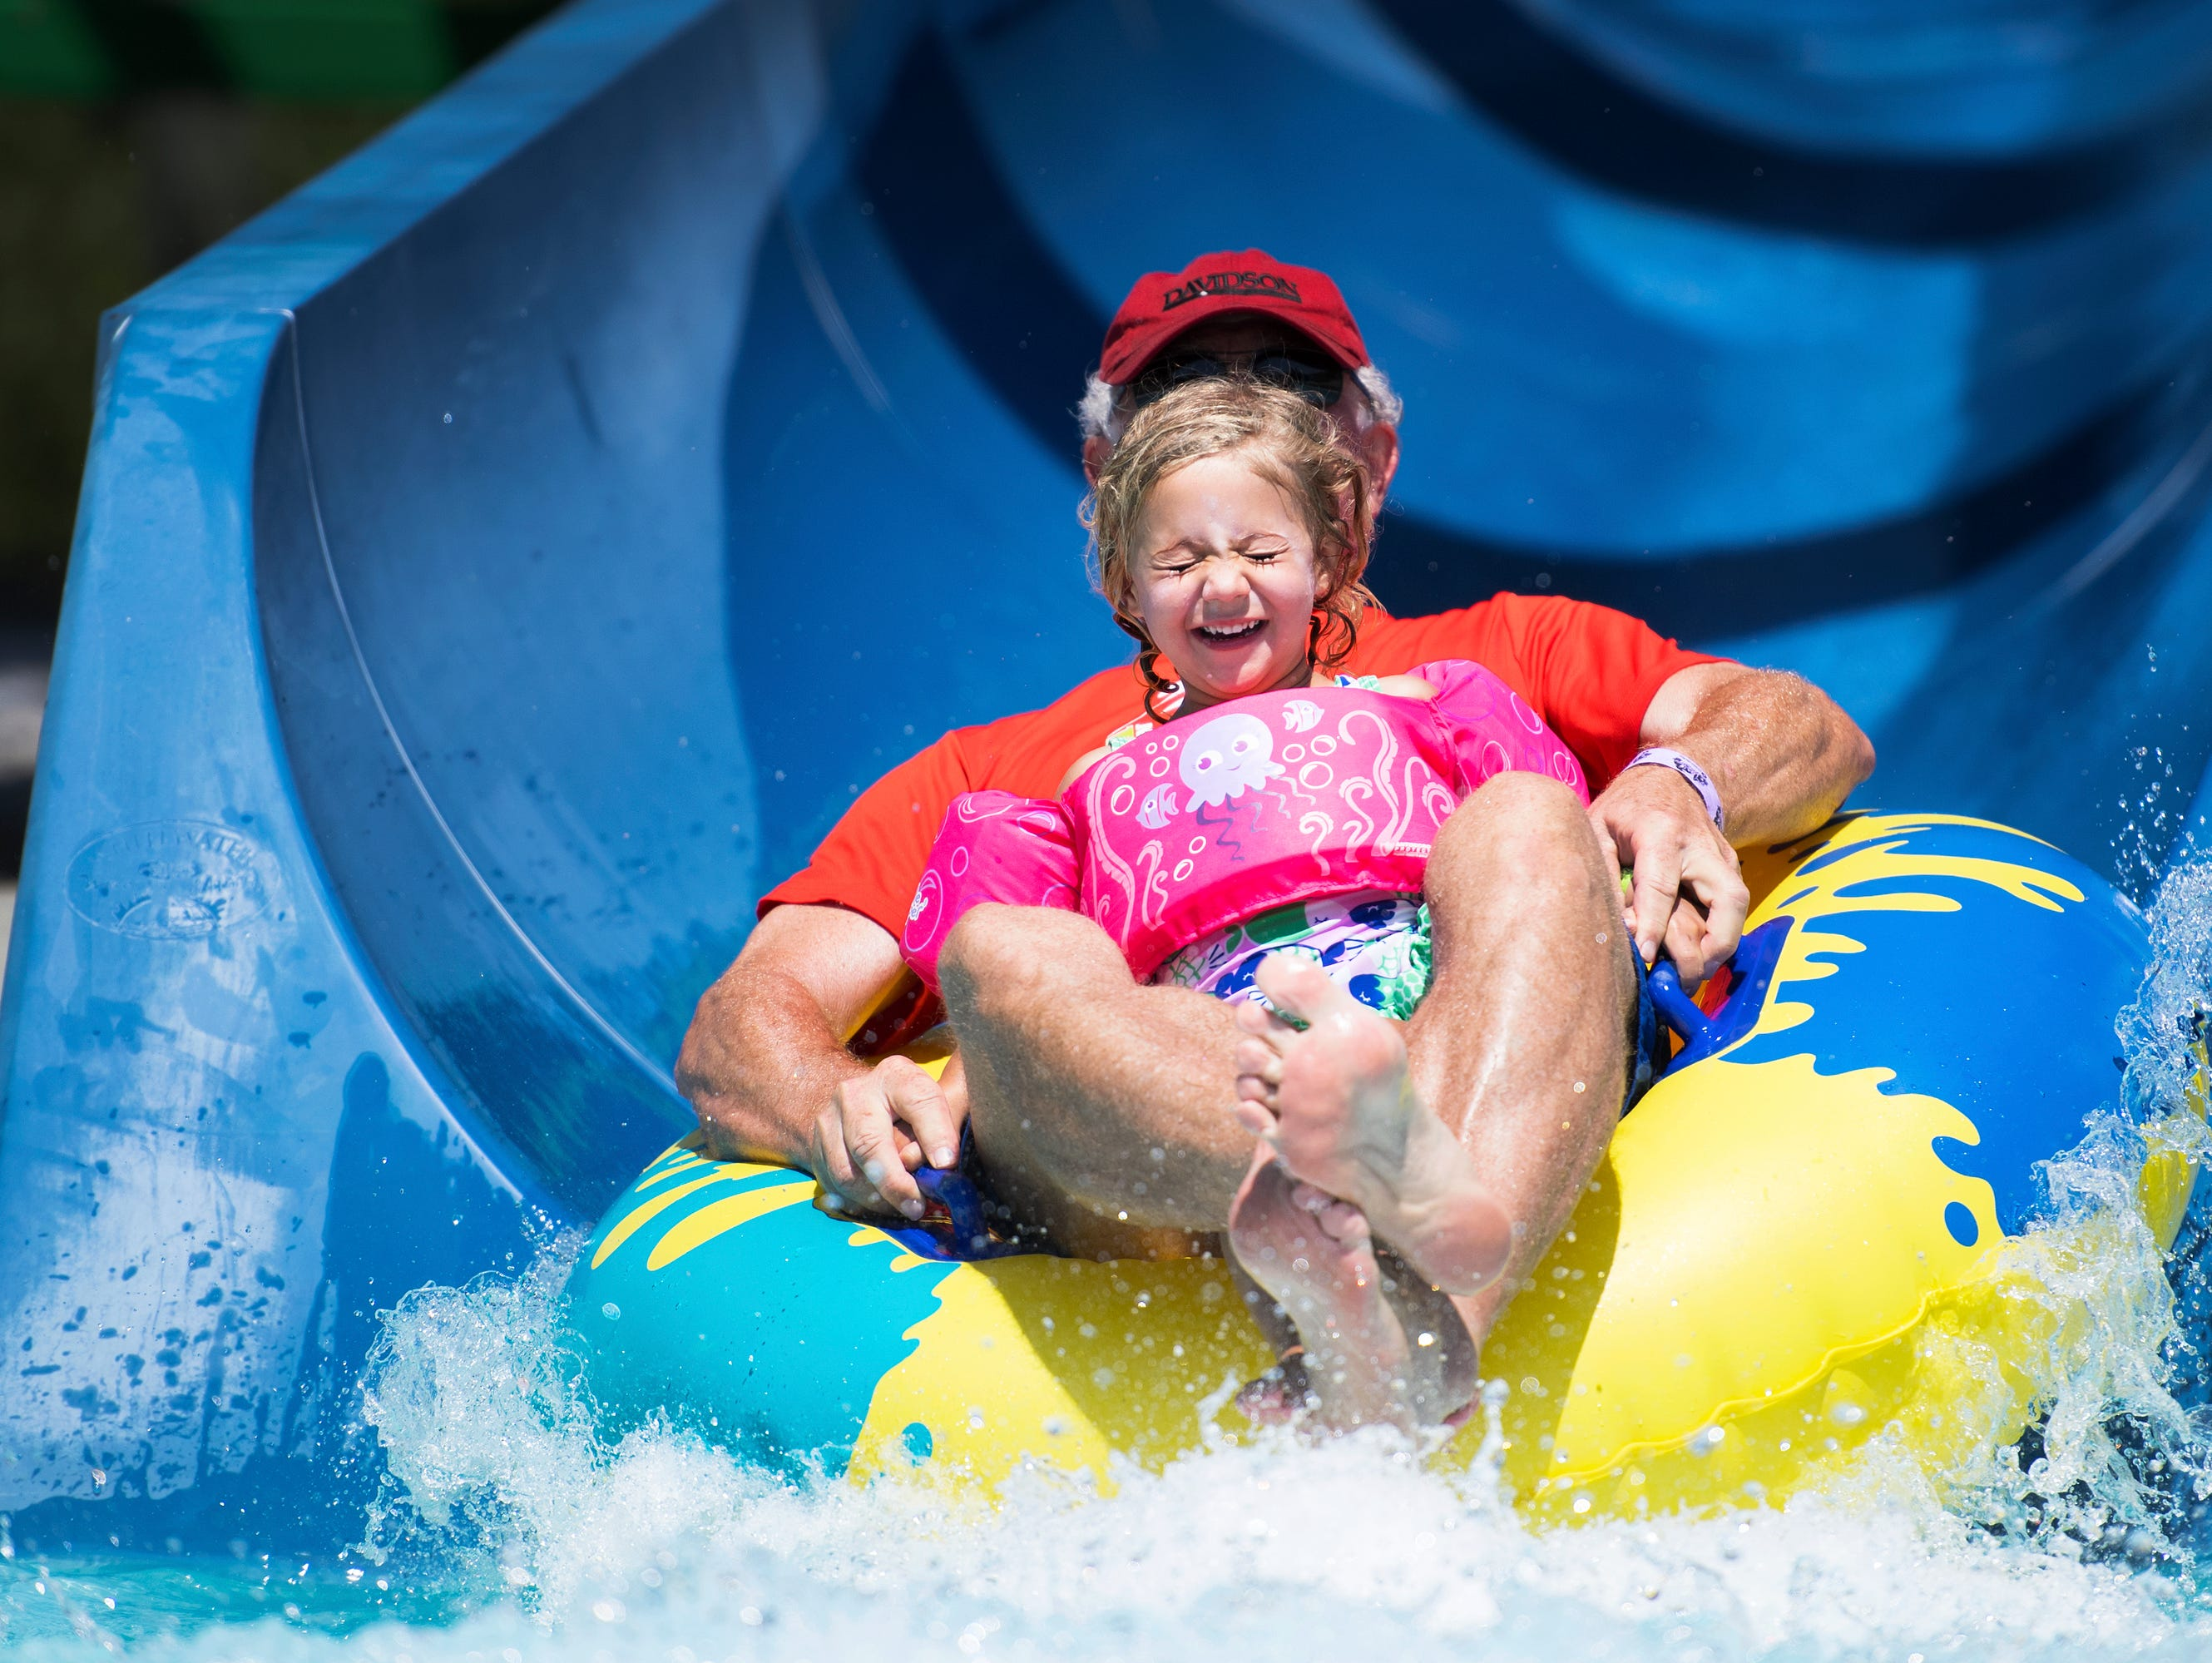 See what you can do this summer in Greenville to beat the heat!